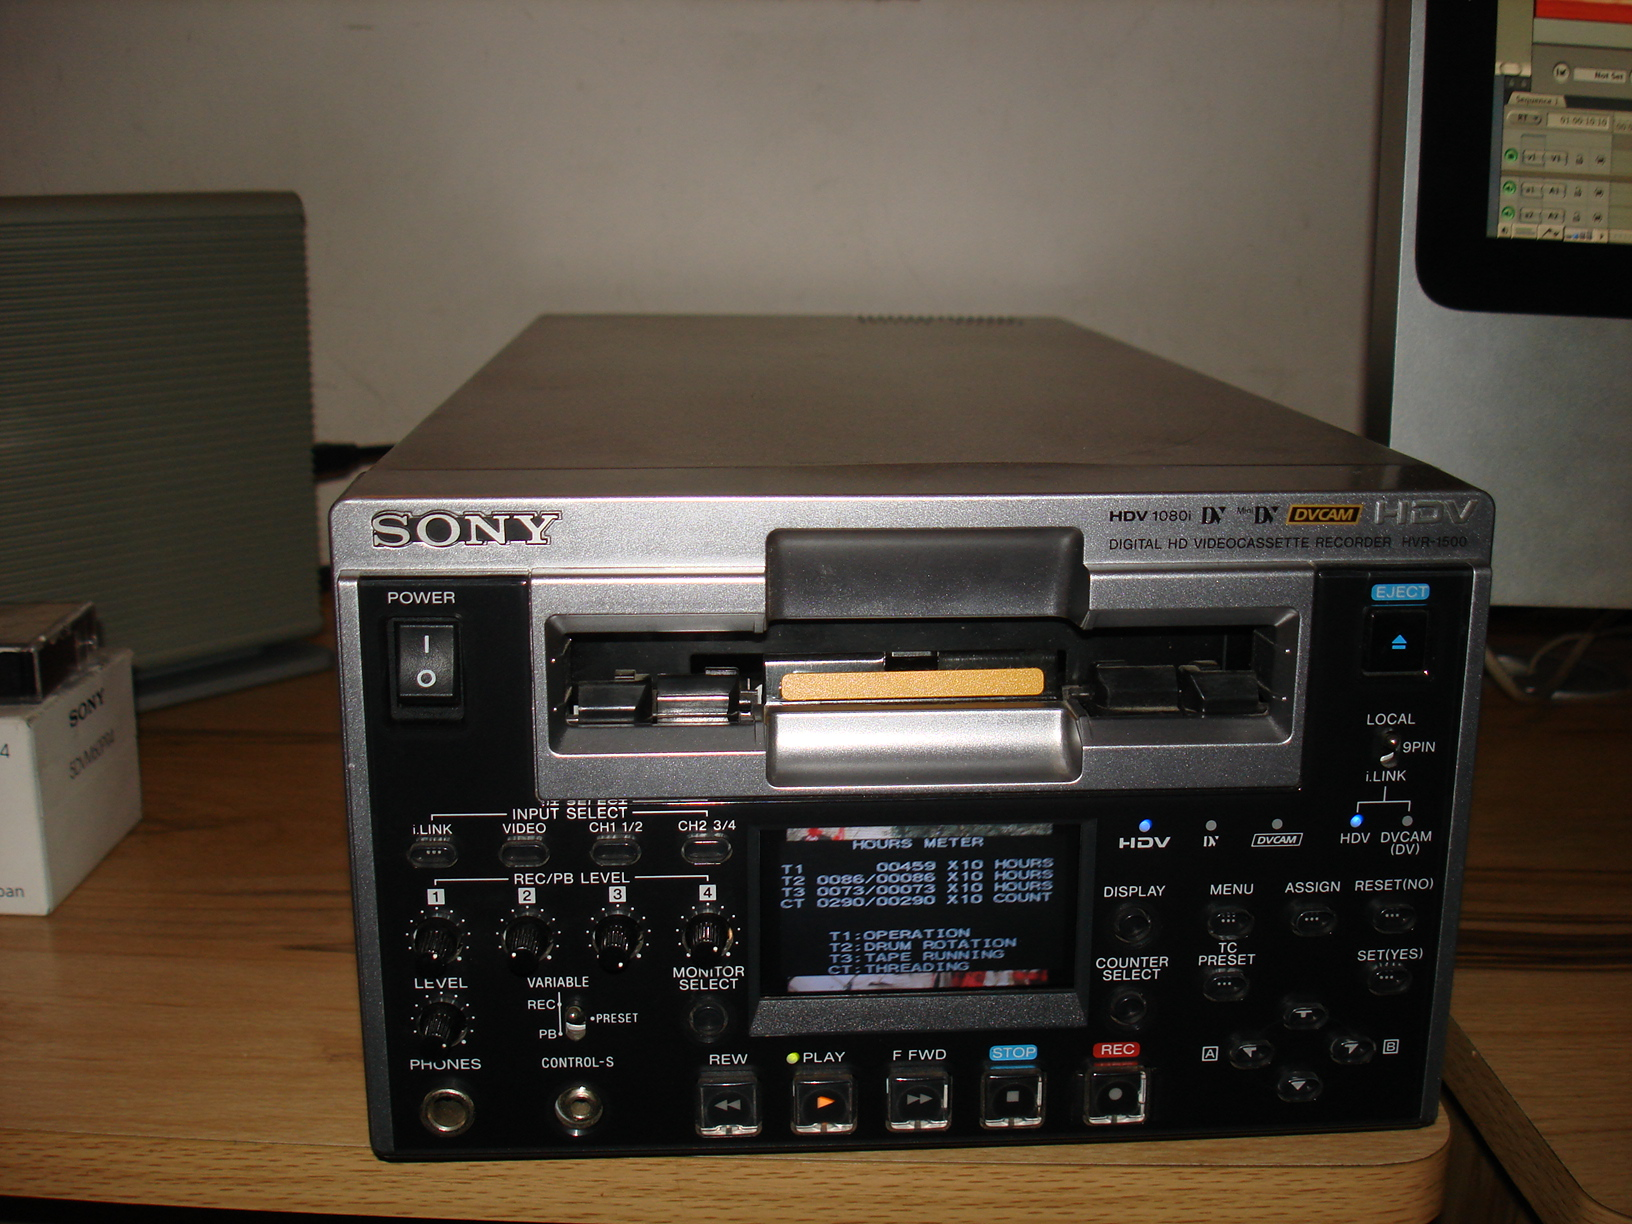 Sony HDW M2000 and HVR 1500 - Image #1